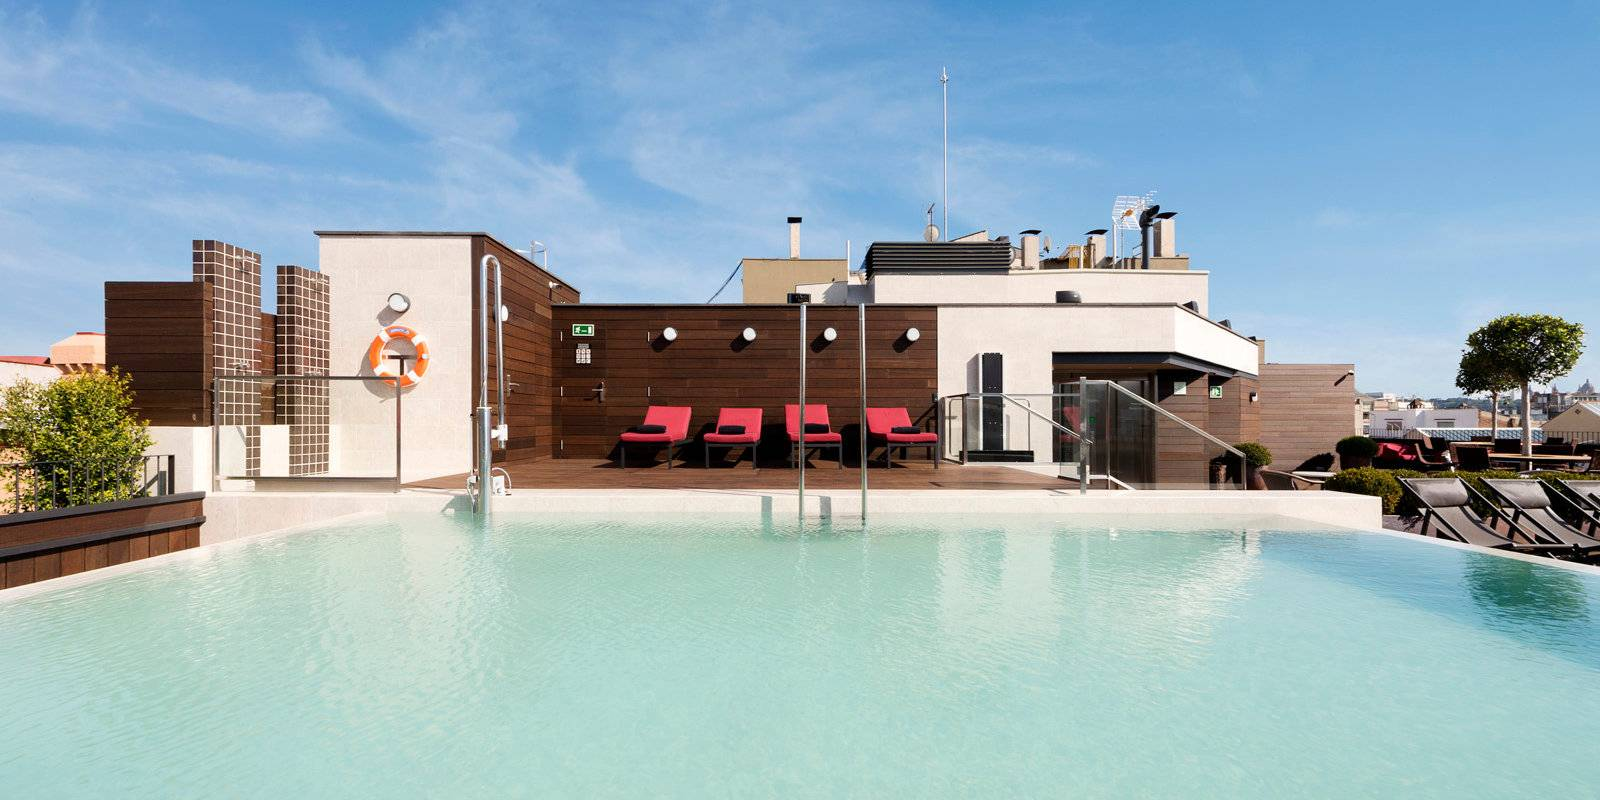 Best gay hotels in Barcelona - the Corner Hotel has a gorgeous rooftop pool and terrace to relax on!